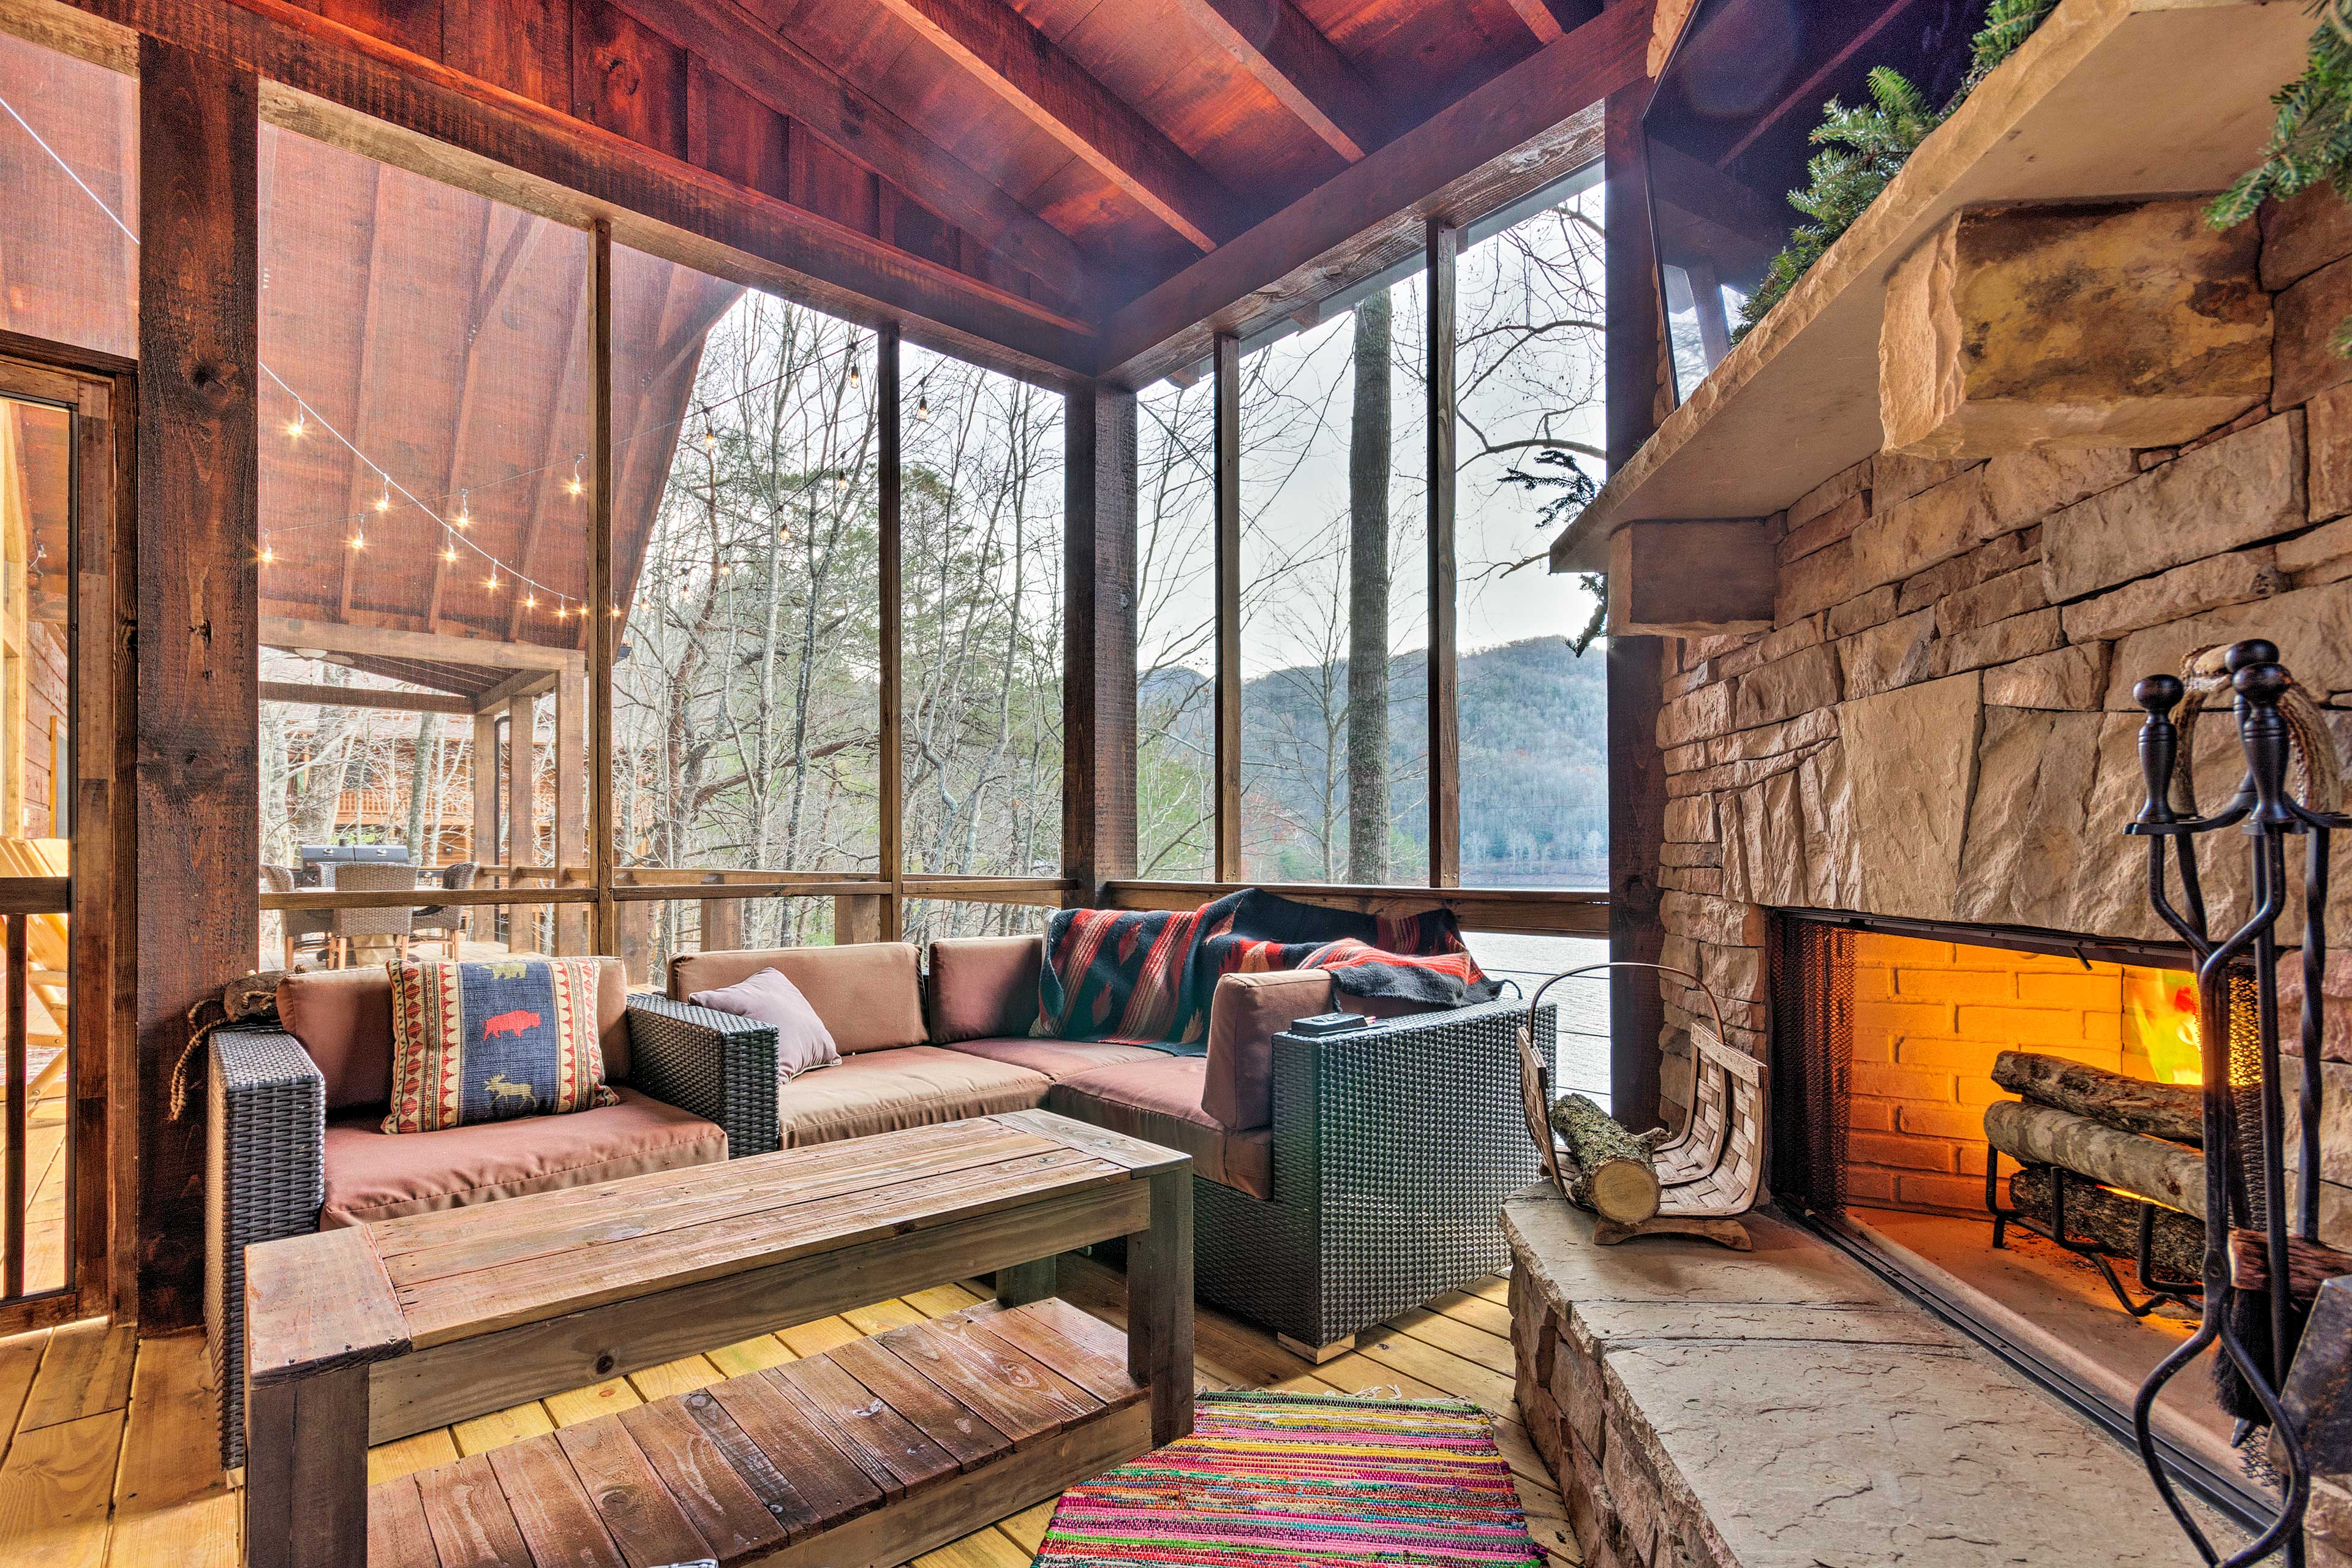 Enjoy the views from this porch sitting area.